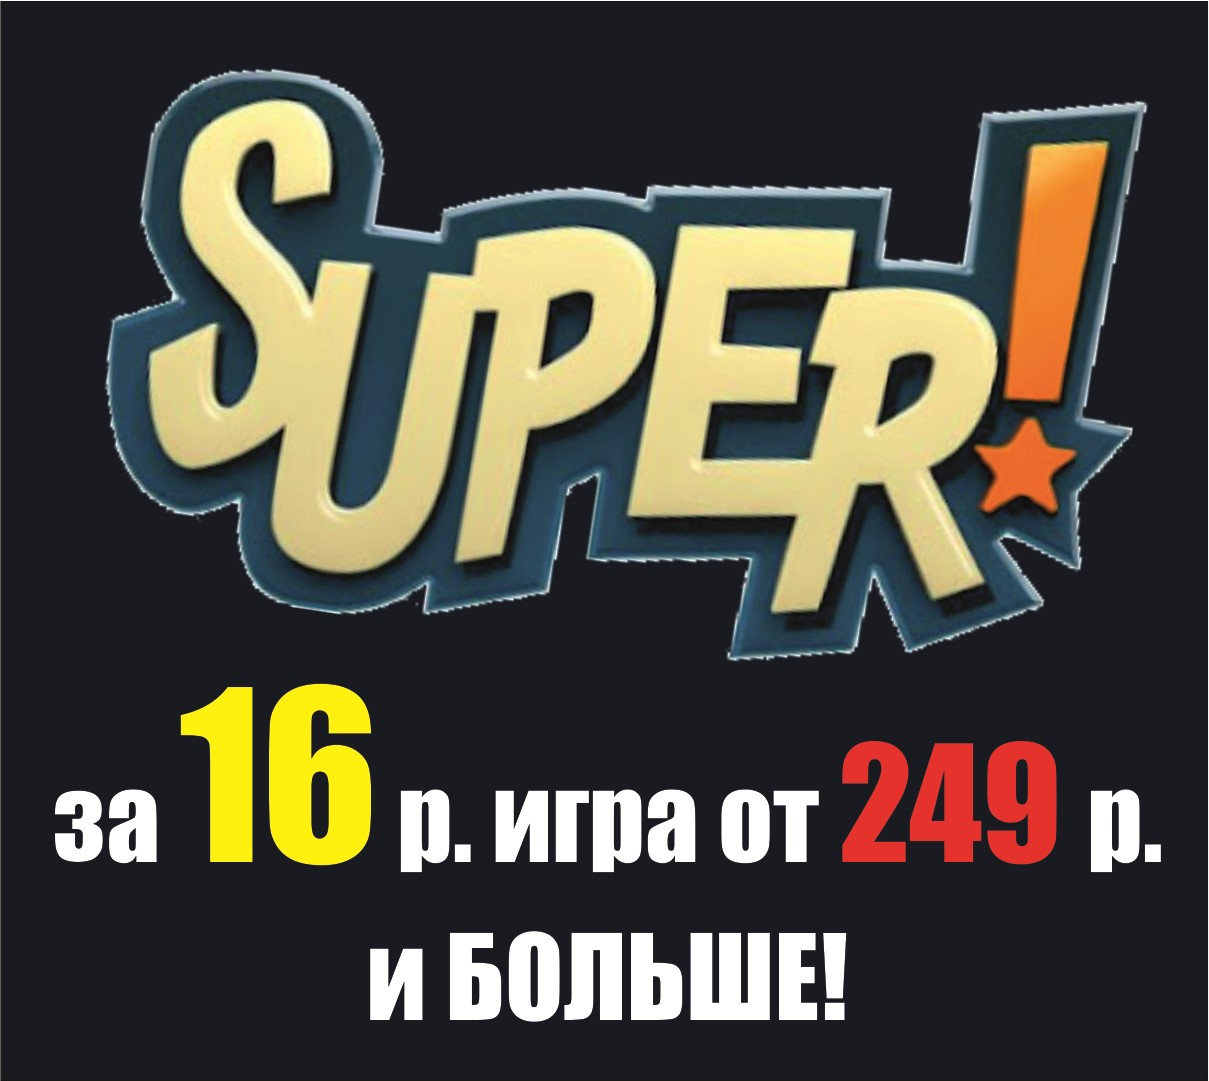 KEY Steam game from 249 rubles